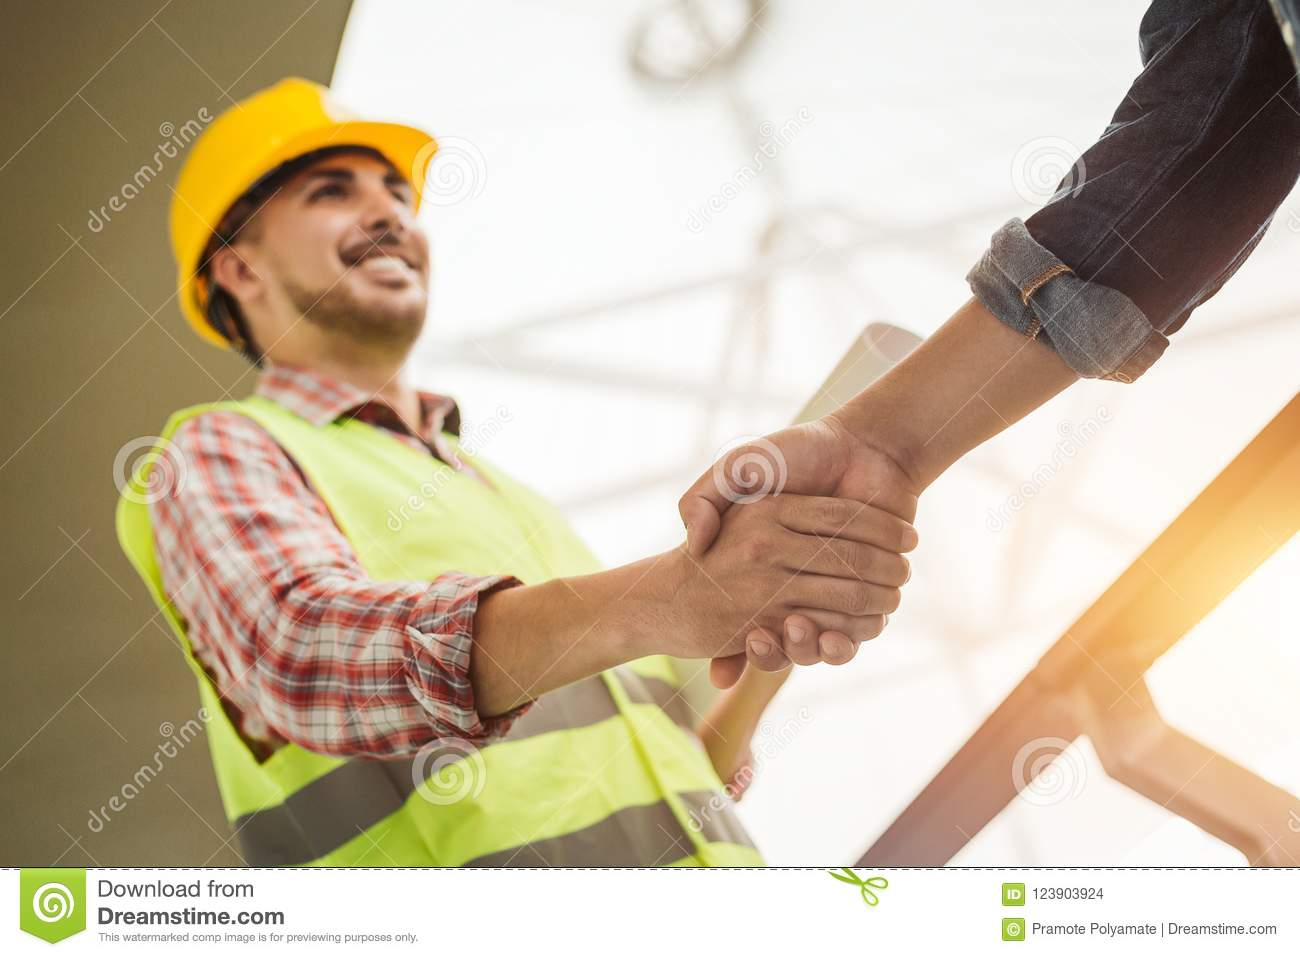 Engineer construction workers in protective helmets and vests ar